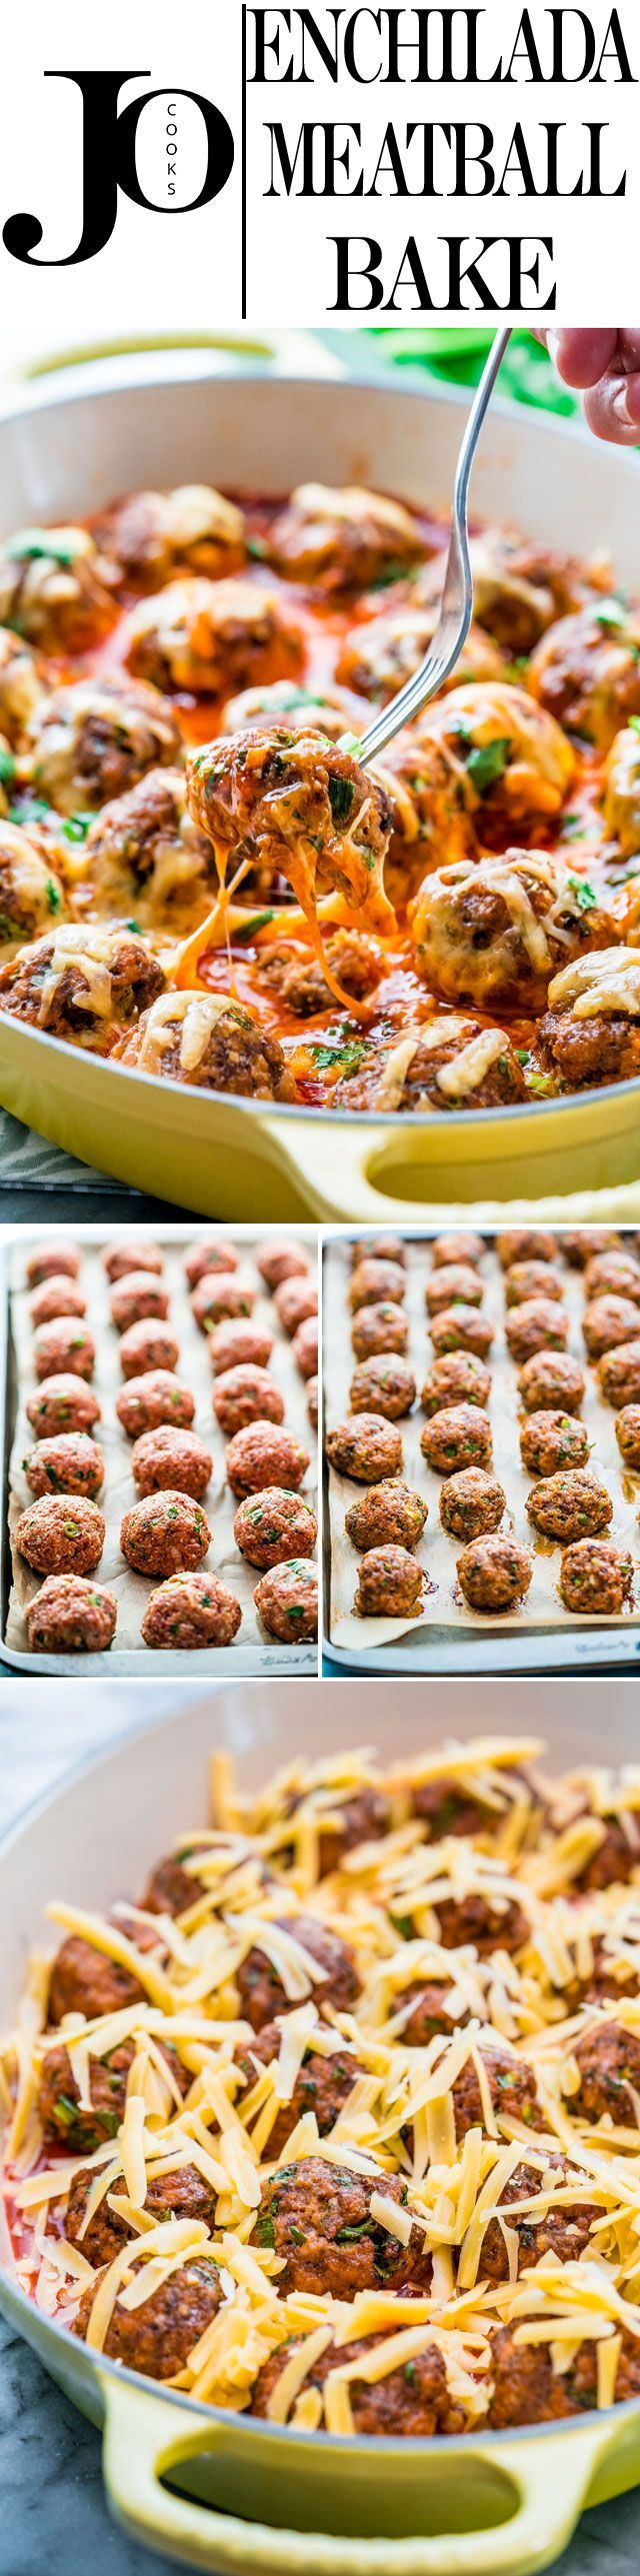 Enchilada Meatball Bake | Jo Cooks | this encompasses everything you know and love about enchiladas, the taste, the flavors, the cheese, but made with meatballs. These enchilada meatballs are made with pork and beef, baked to perfection, crisp on the outside, baked in an enchilada sauce and smothered with cheese.